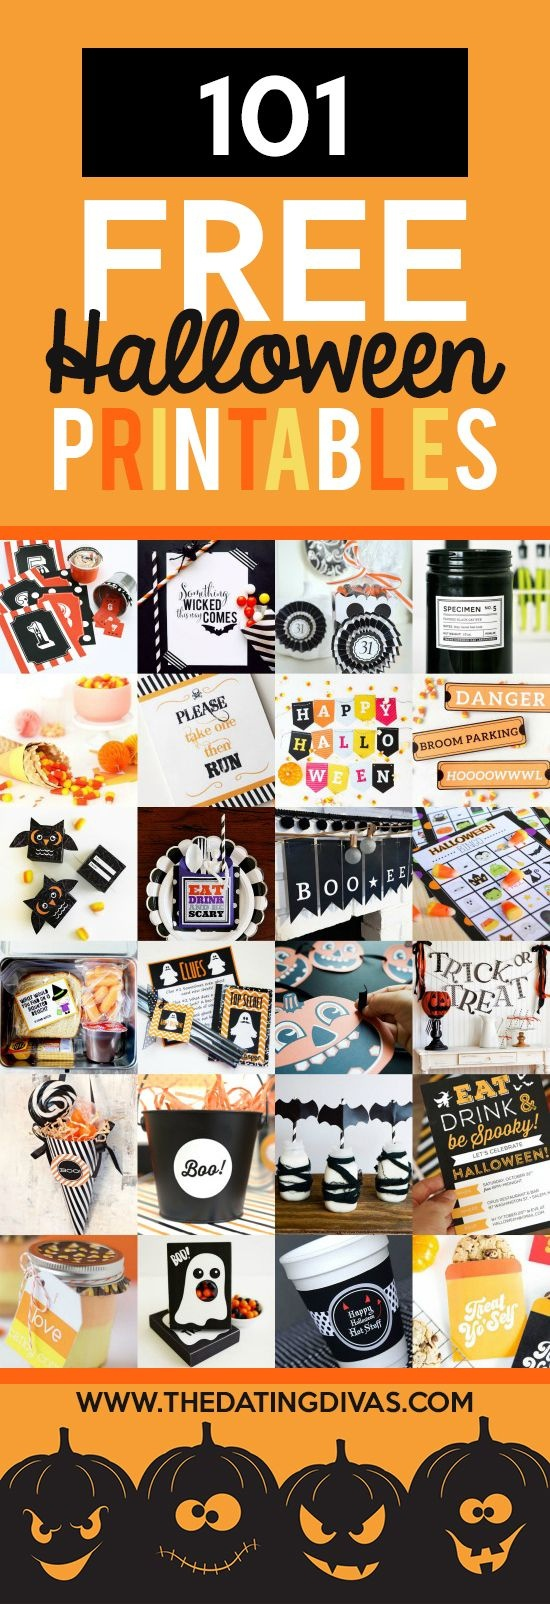 Pinterest - Free Printable Halloween Party Decorations